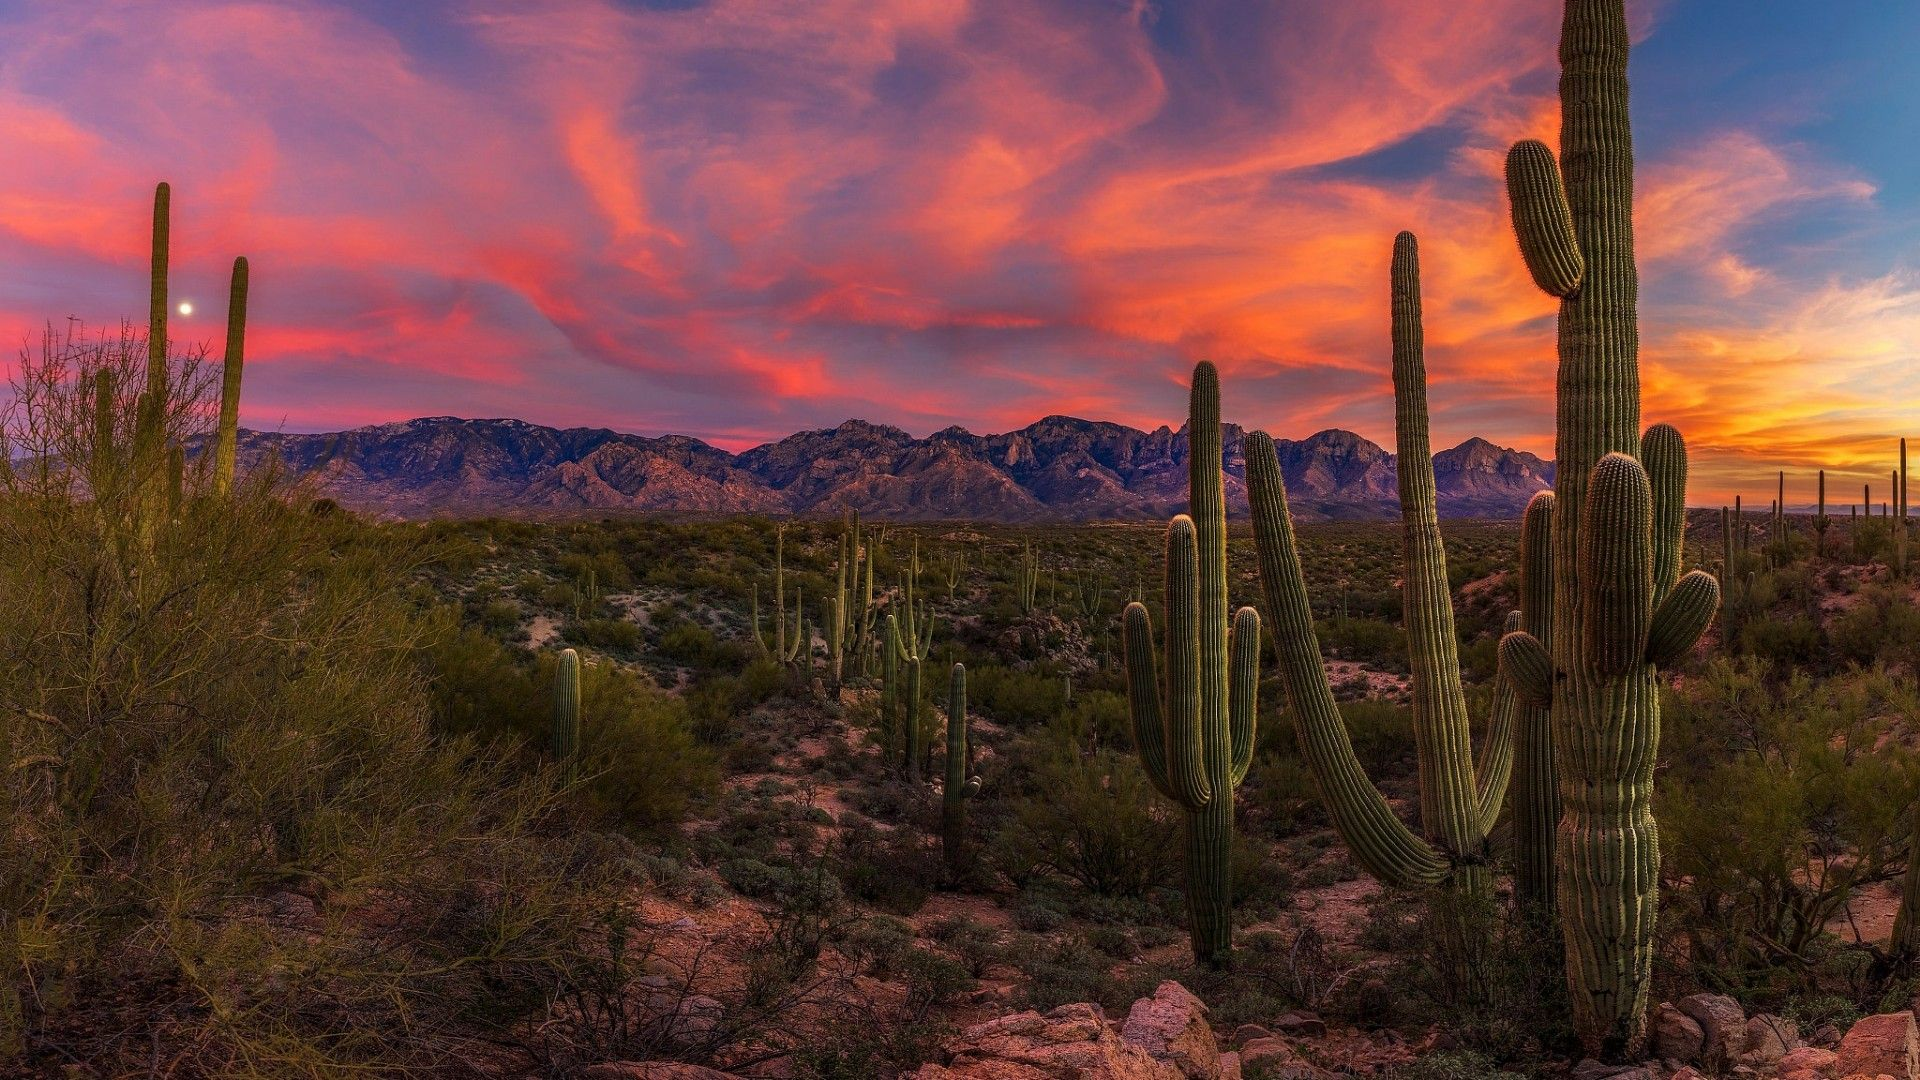 Arizona Desert Sunset Wallpaper